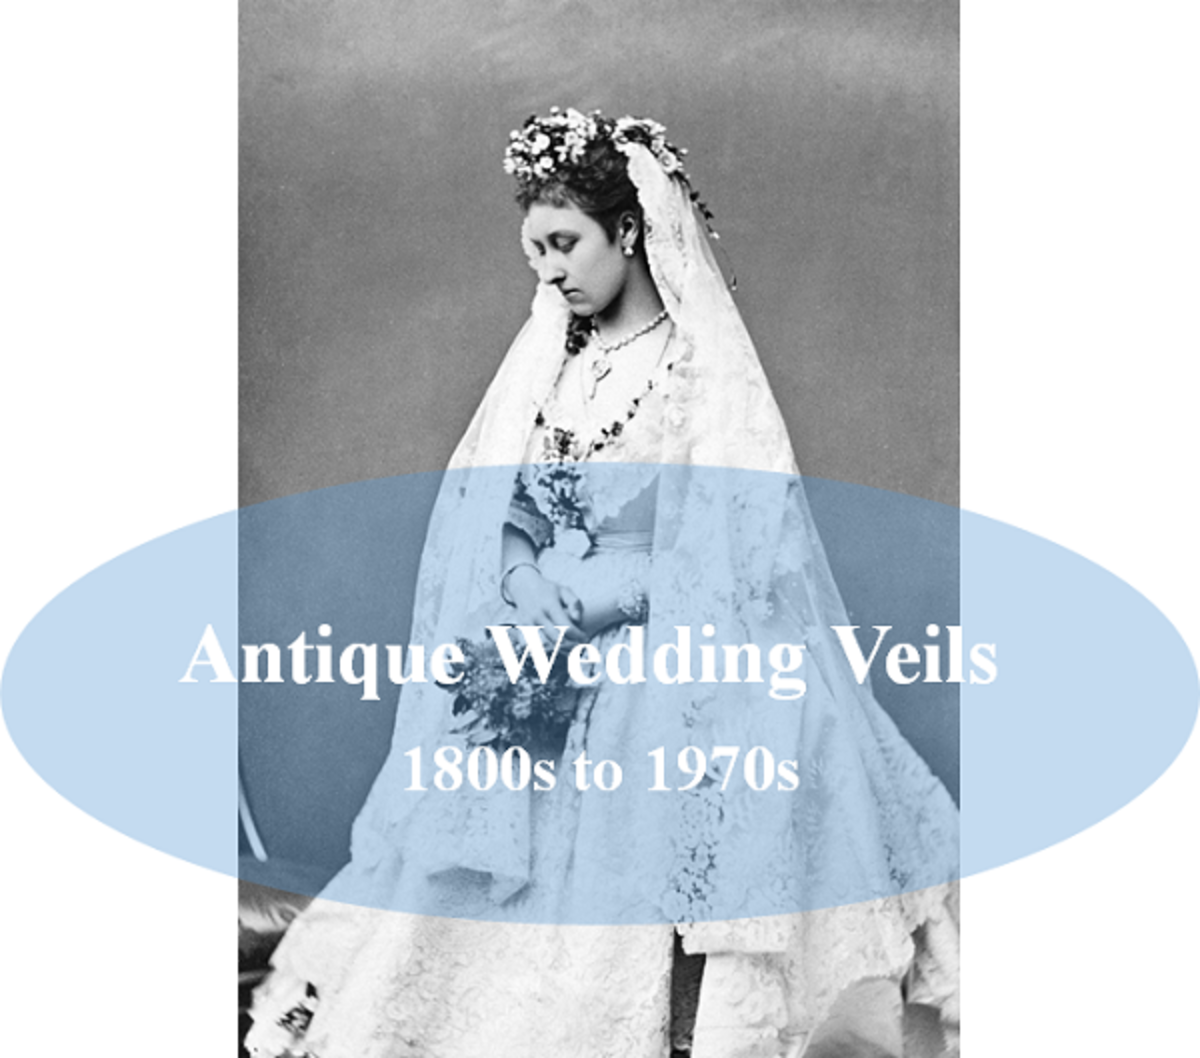 blend-and-twist-traditions-from-the-past-into-your-wedding_wear-antique-wedding-veils